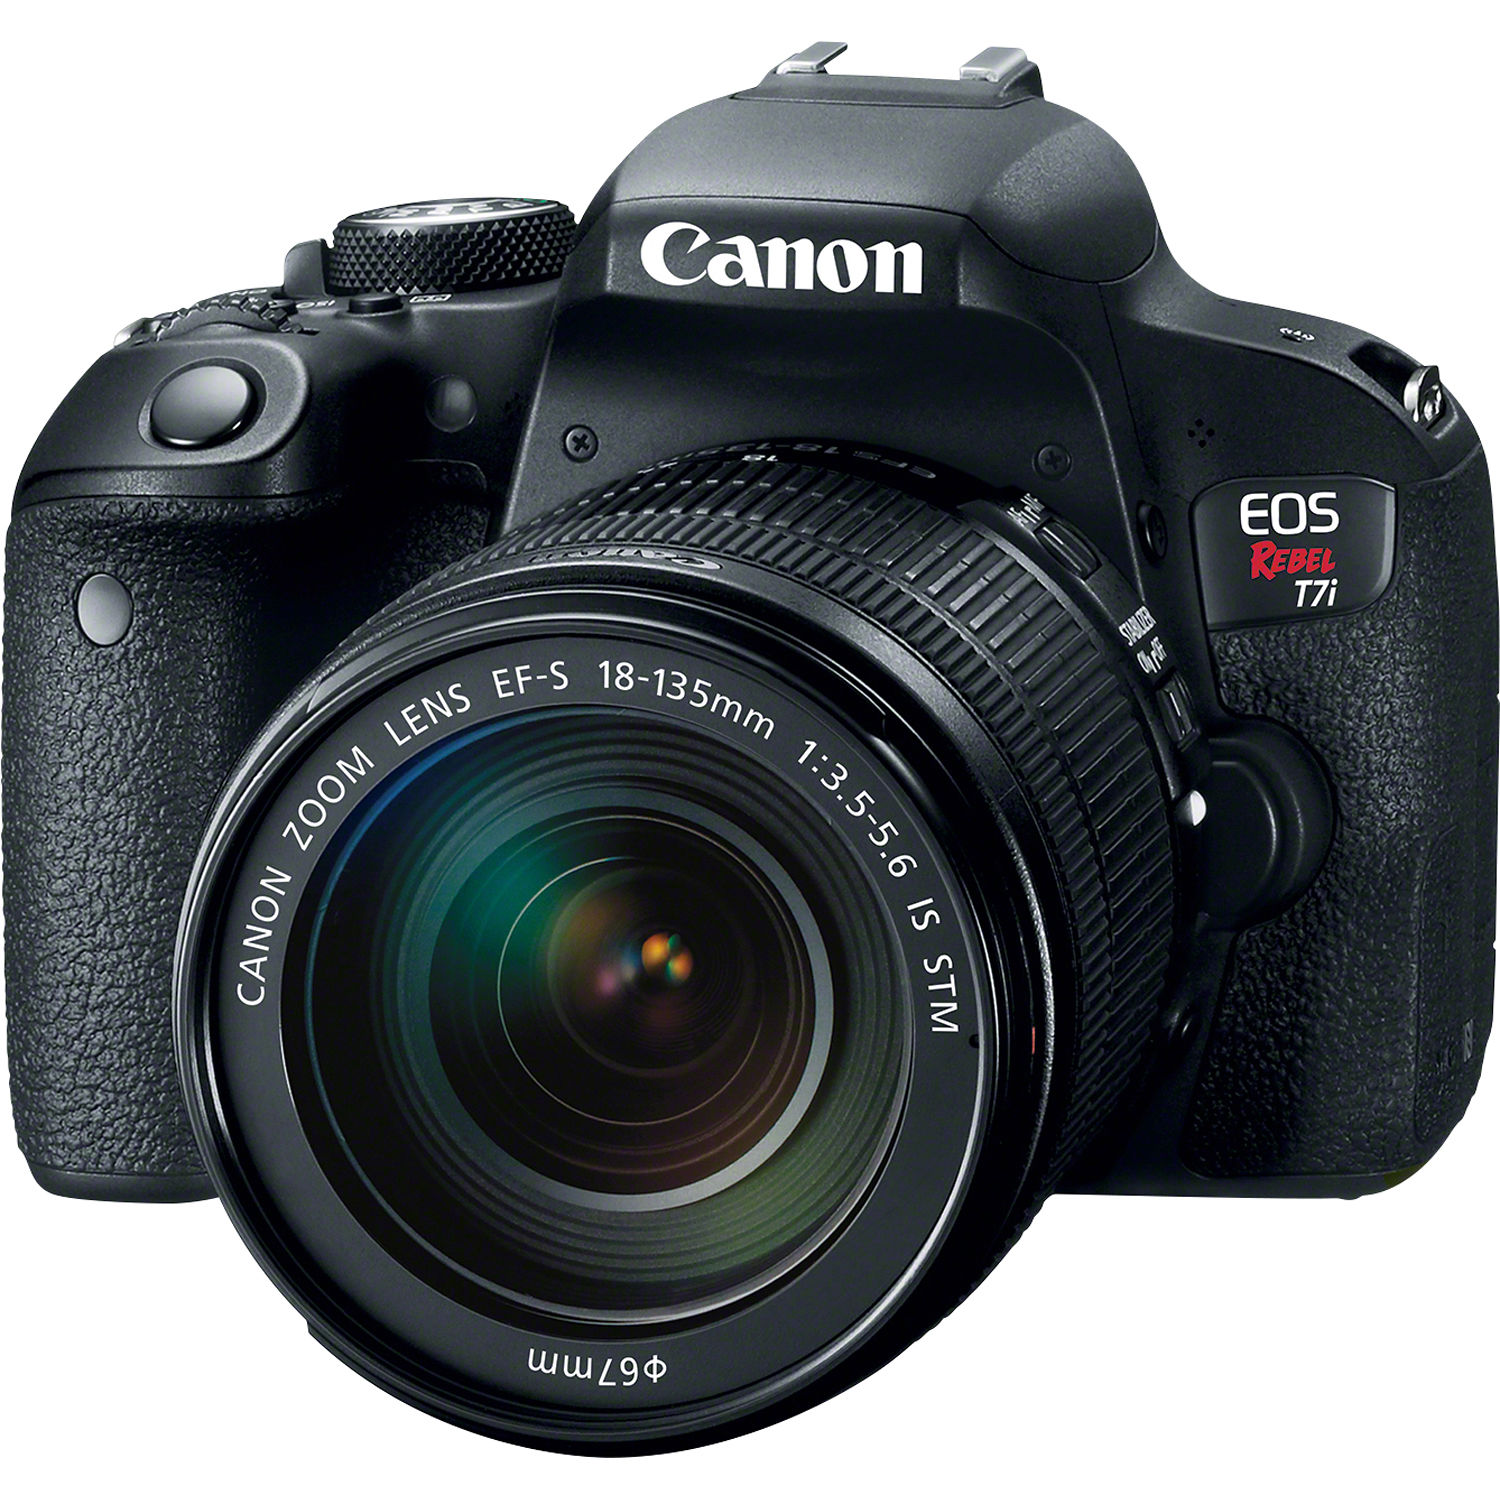 Canon EOS Rebel T7i DSLR Camera with 18-135mm Lens 1894C003 B&H